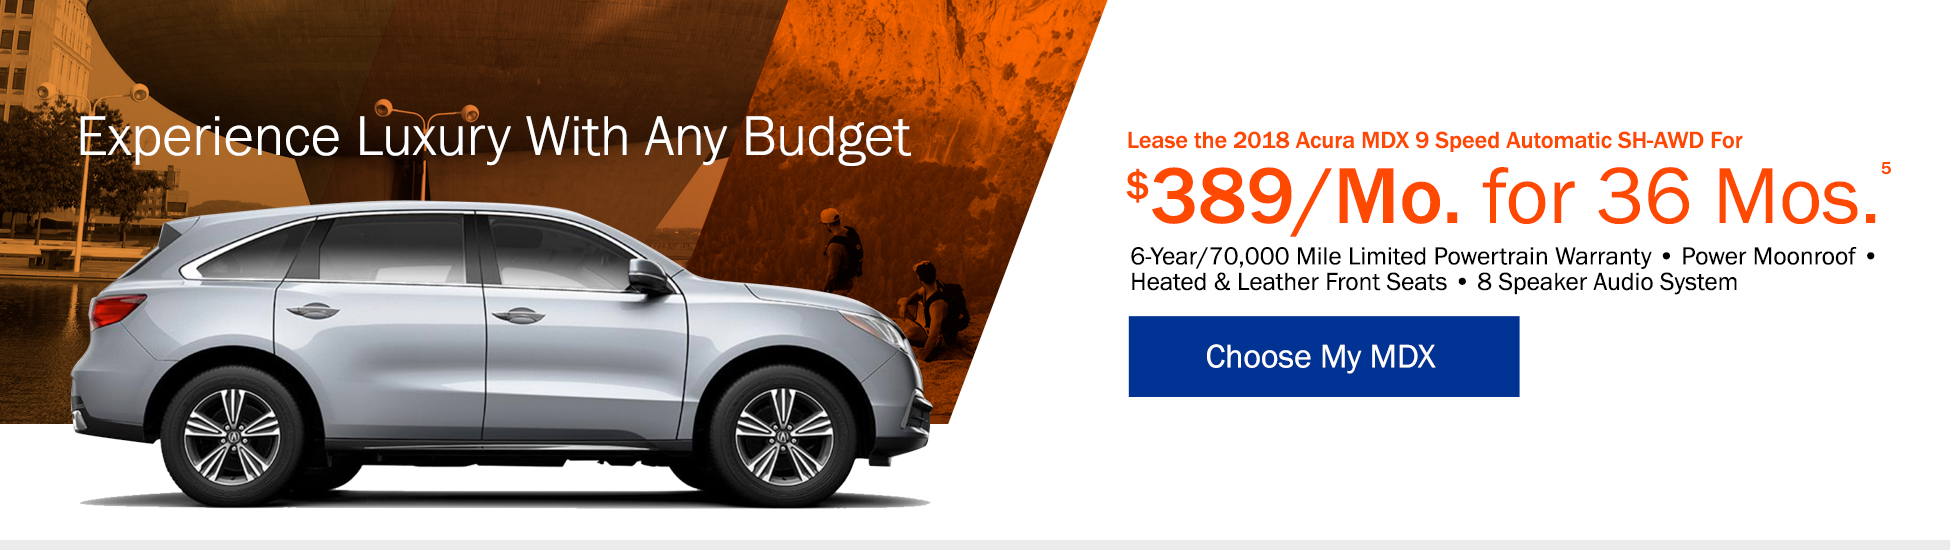 Lease the 2018 Acura MDX 9 Speed Automatic SH-AWD for $429 per month for 36 months - Shop MDX